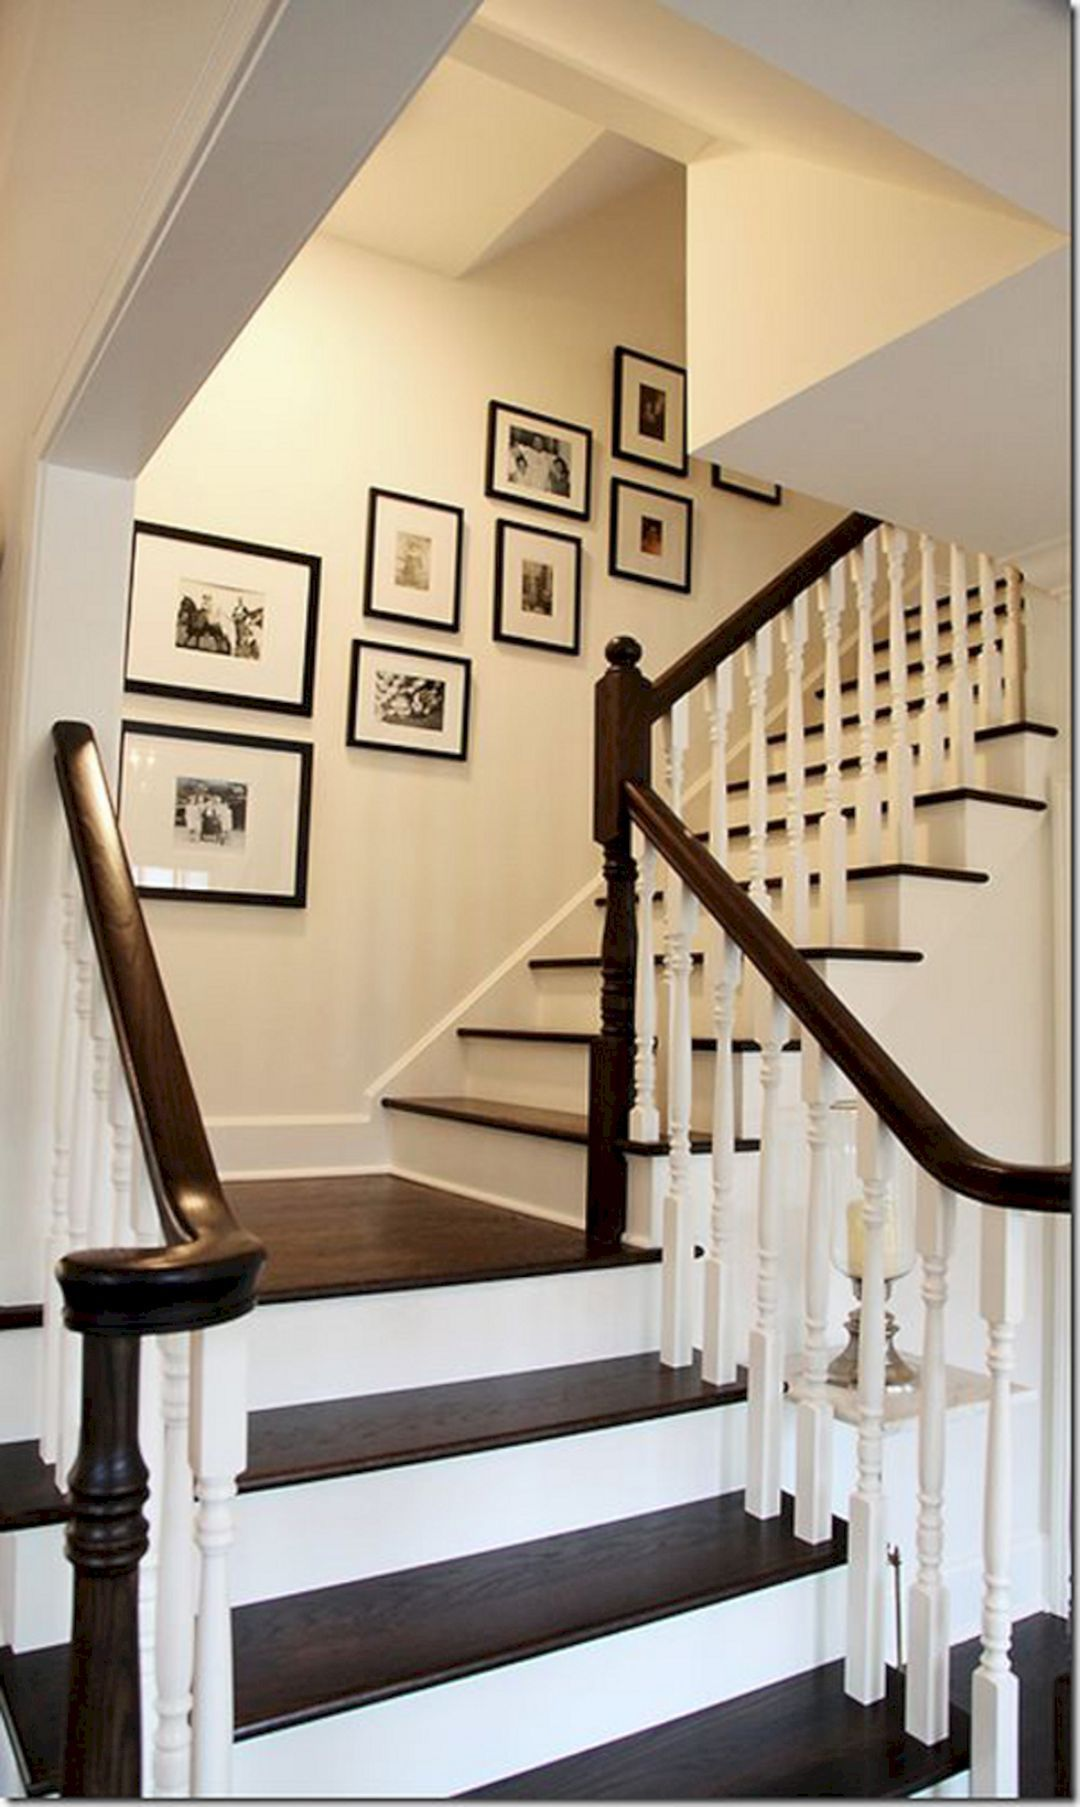 65+ Awesome Arranging Pictures On A Stair Wall Ideas ...